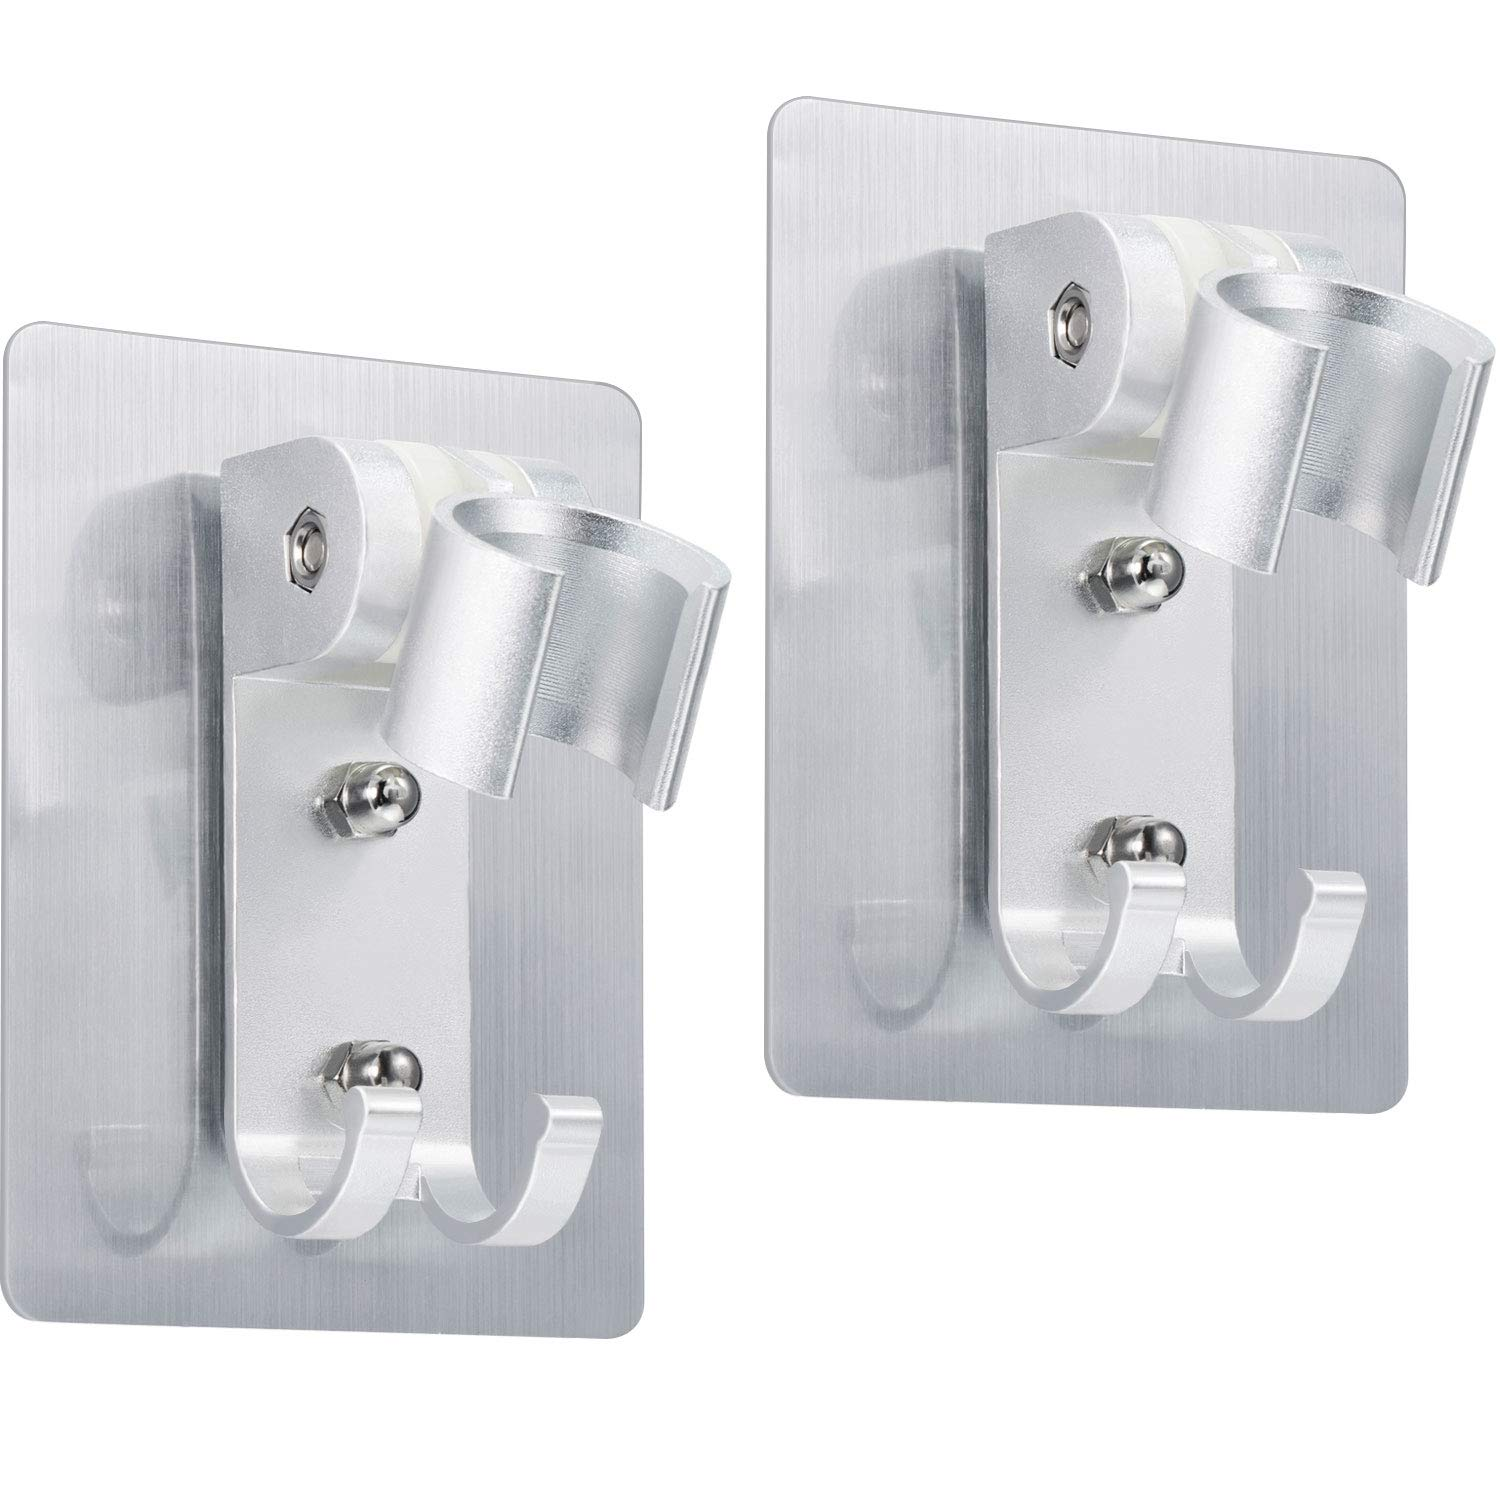 2 Pack Shower Head Holder Strong Adhesive Shower Head Wall Mounting Bracket Adjustable Shower Wand Holder with 2 Hanger Hooks No Drill Need Chengu